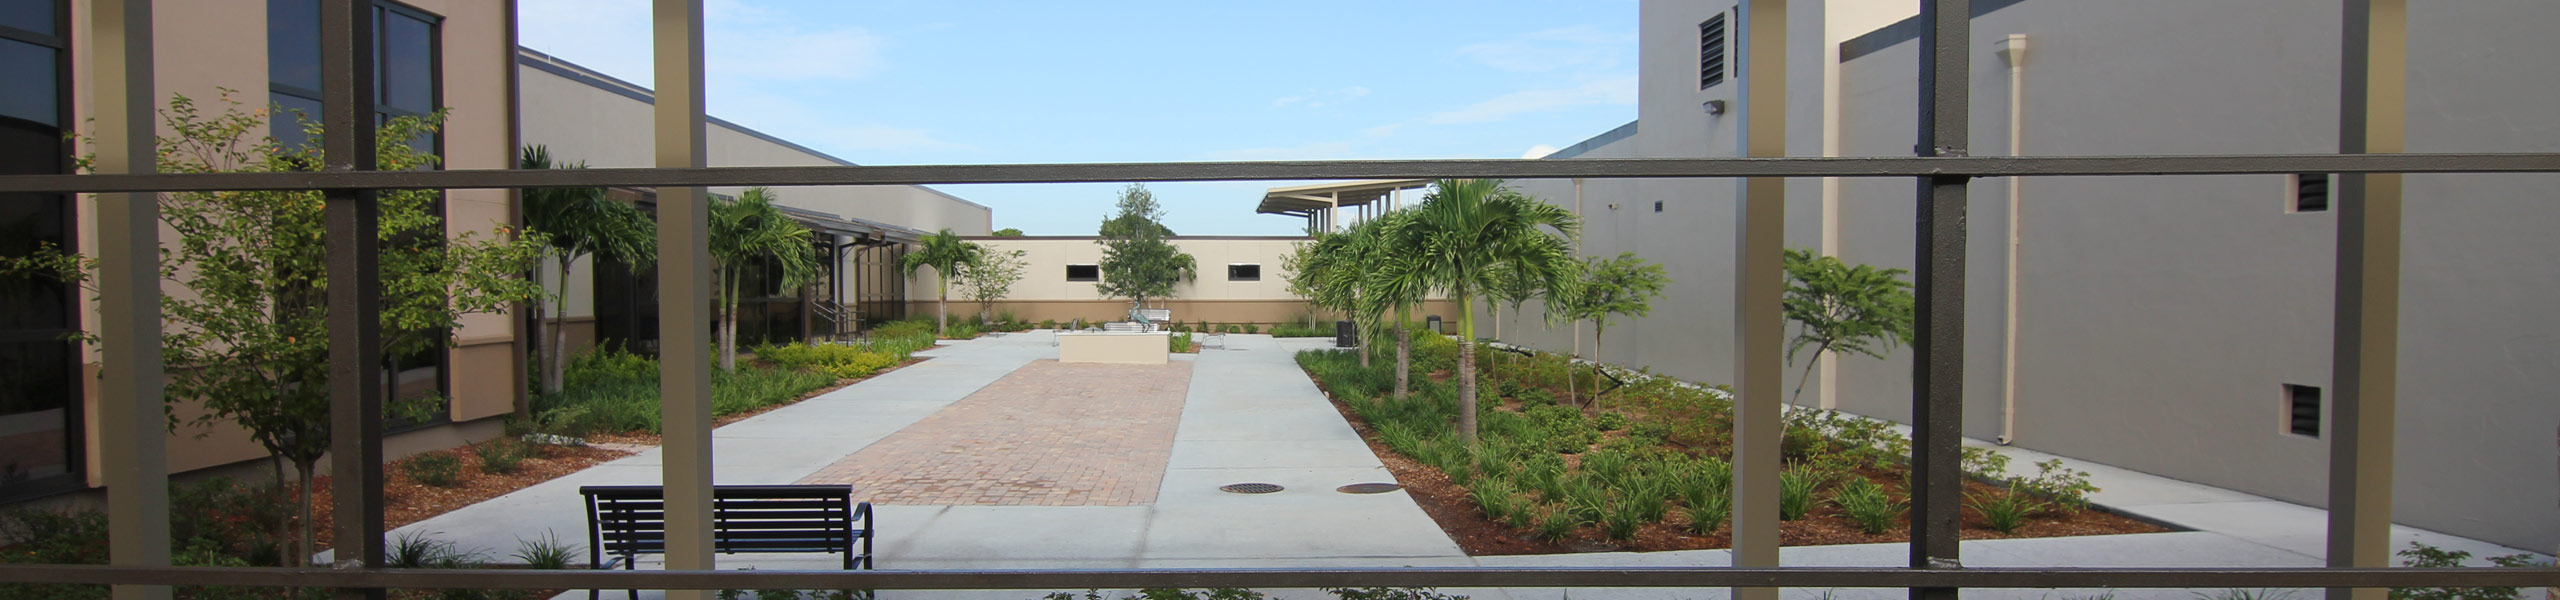 Picture of a little Courtyard area outside of The Hendry Regional Hospital